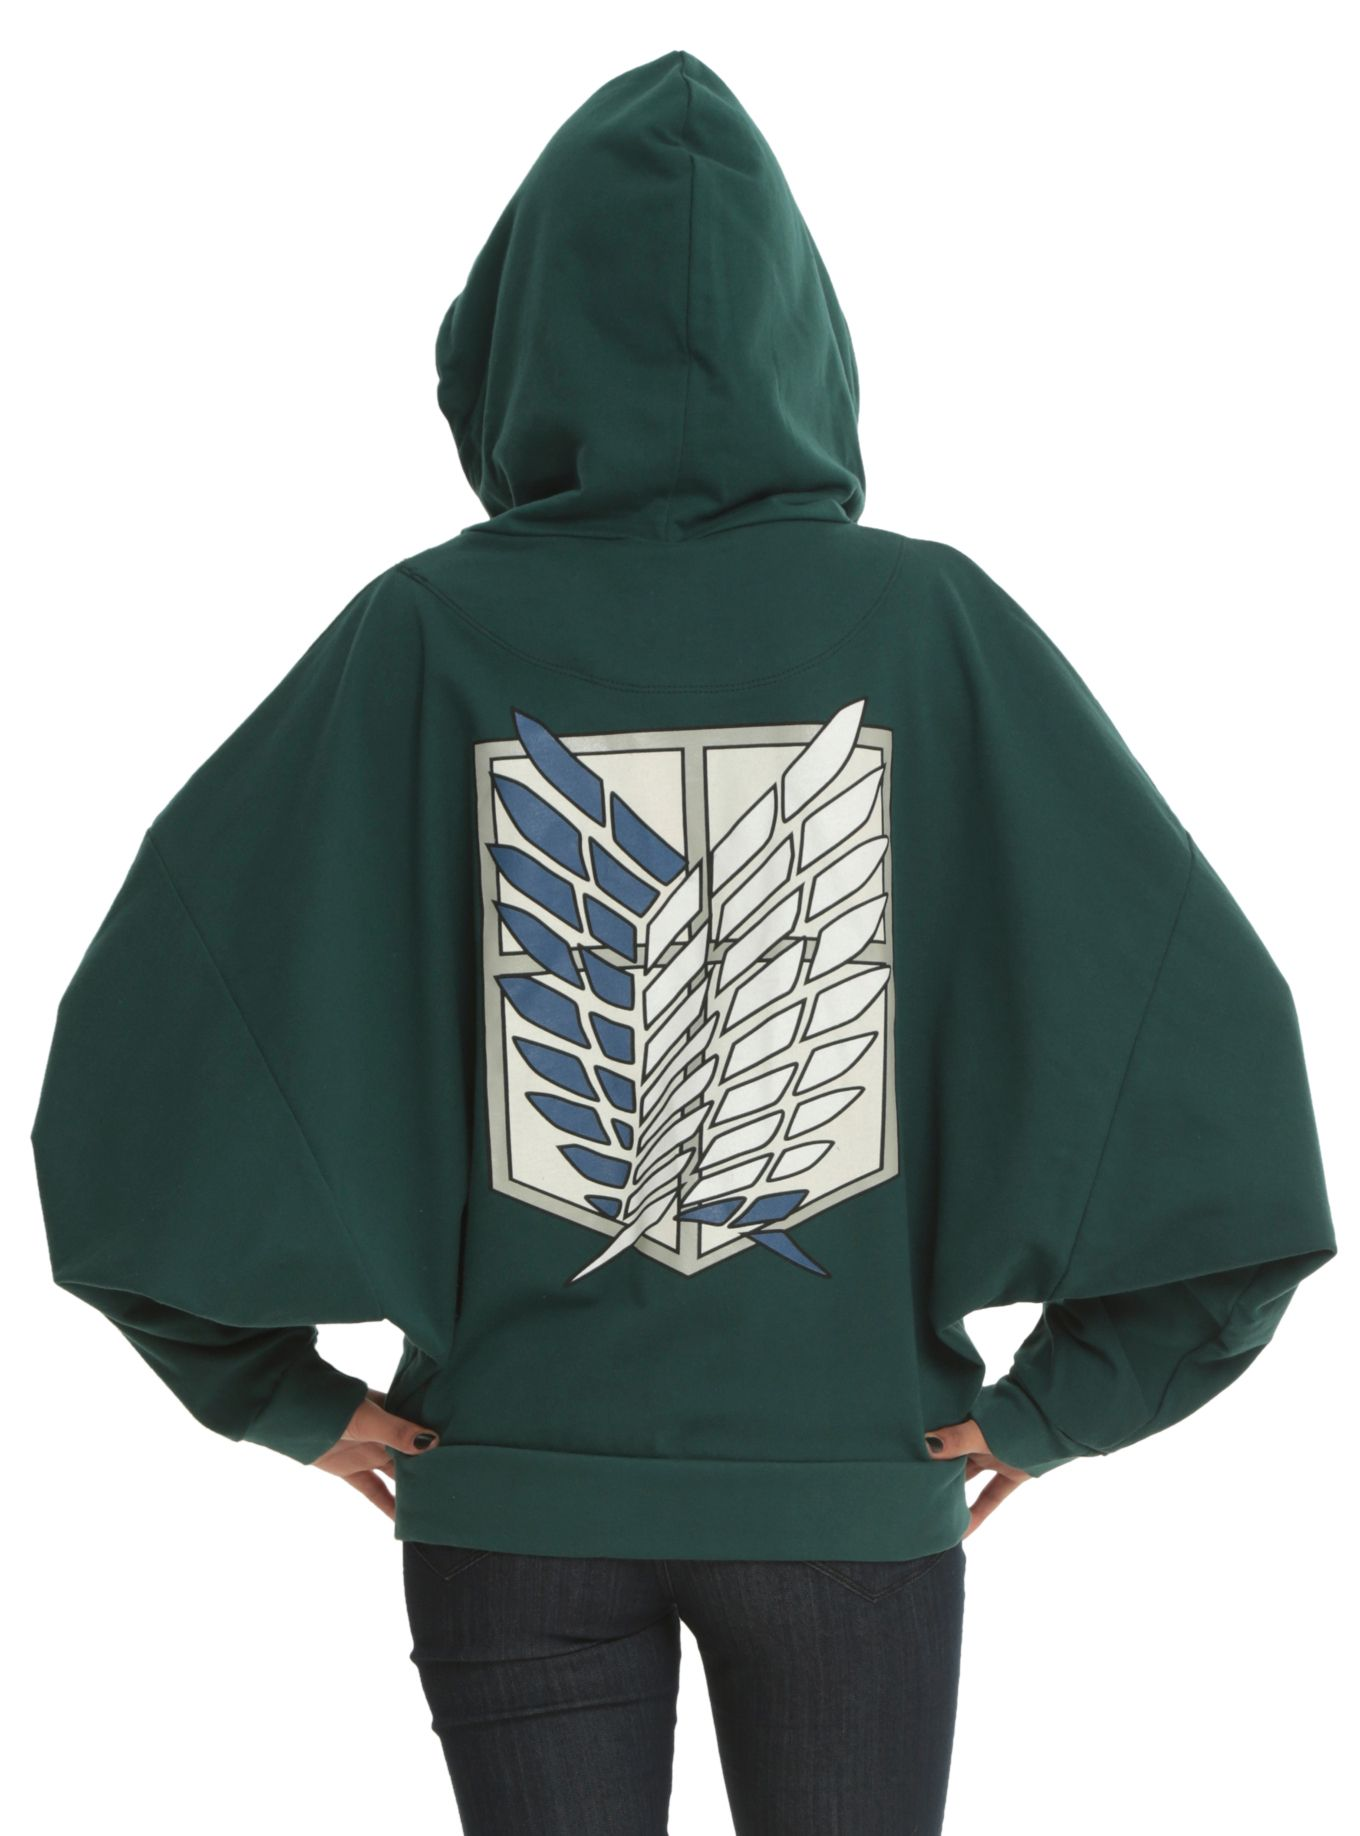 21a16e9ee76 How cute is this  It even has dolman sleeves! Attack On Titan Scout  Regiment Costume Girls Zip Hoodie